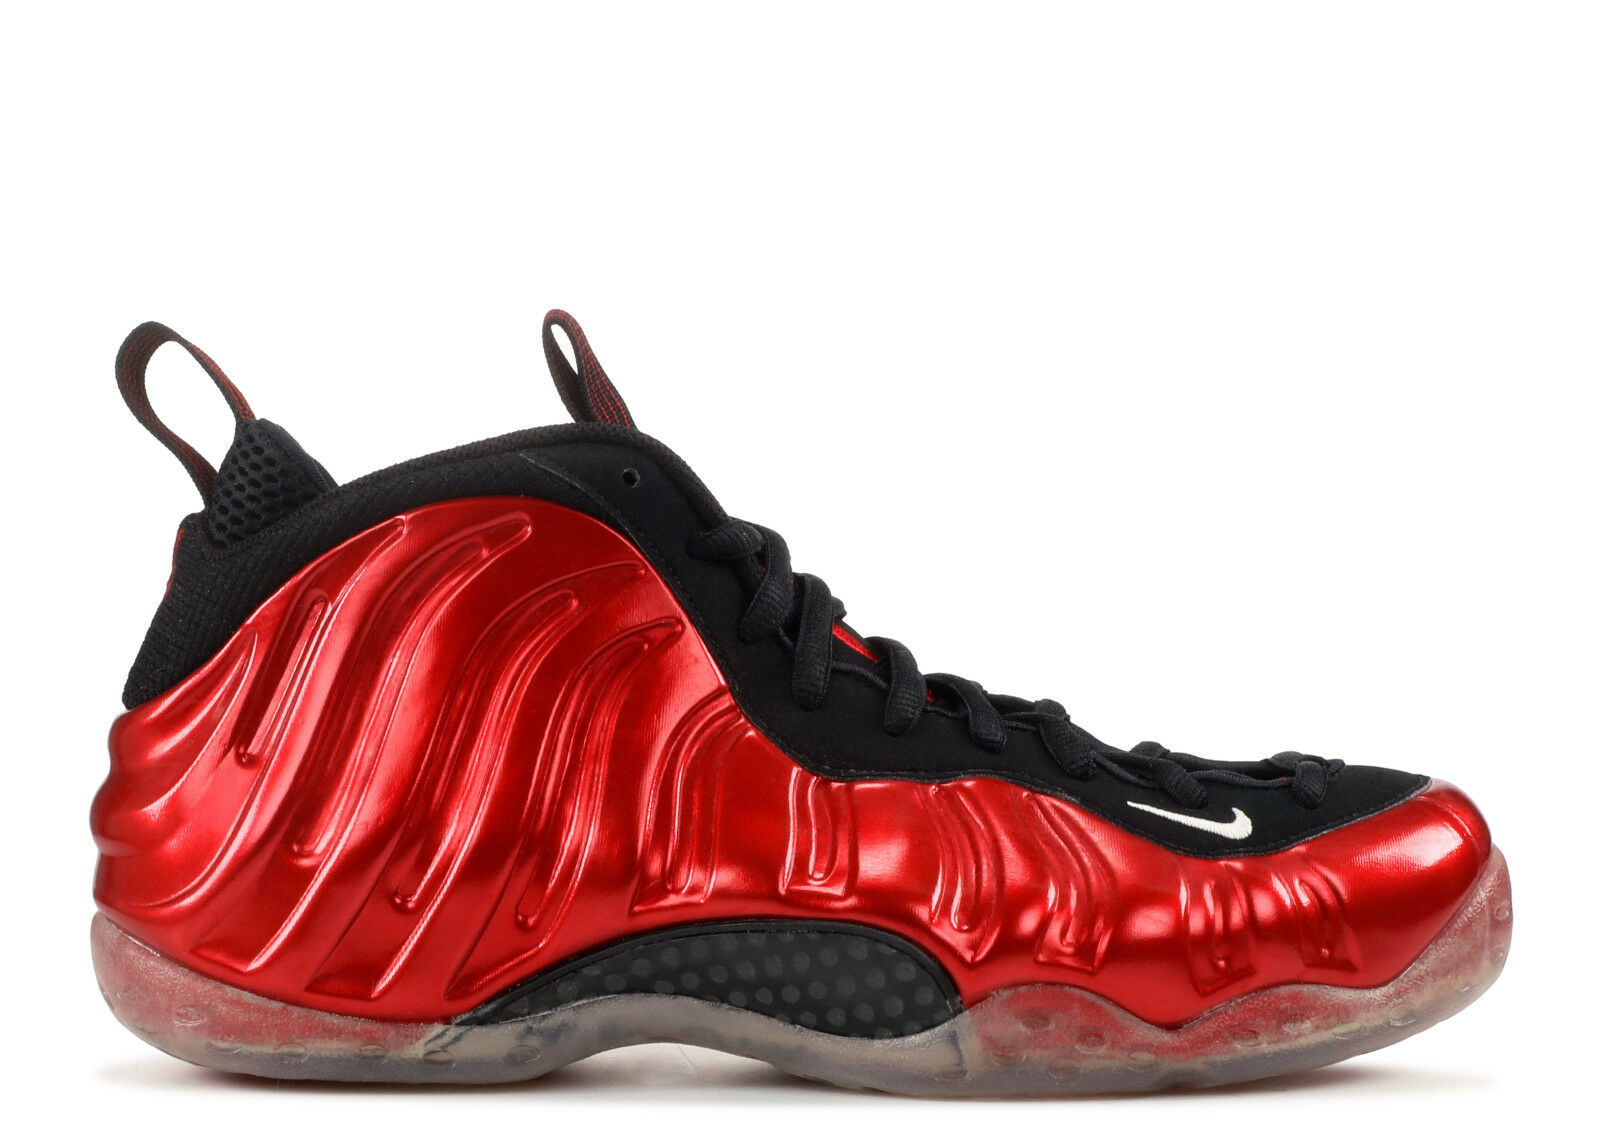 2012 Nike Air Foamposite One Metallic Red Size 12. 314996-610 Jordan Penny